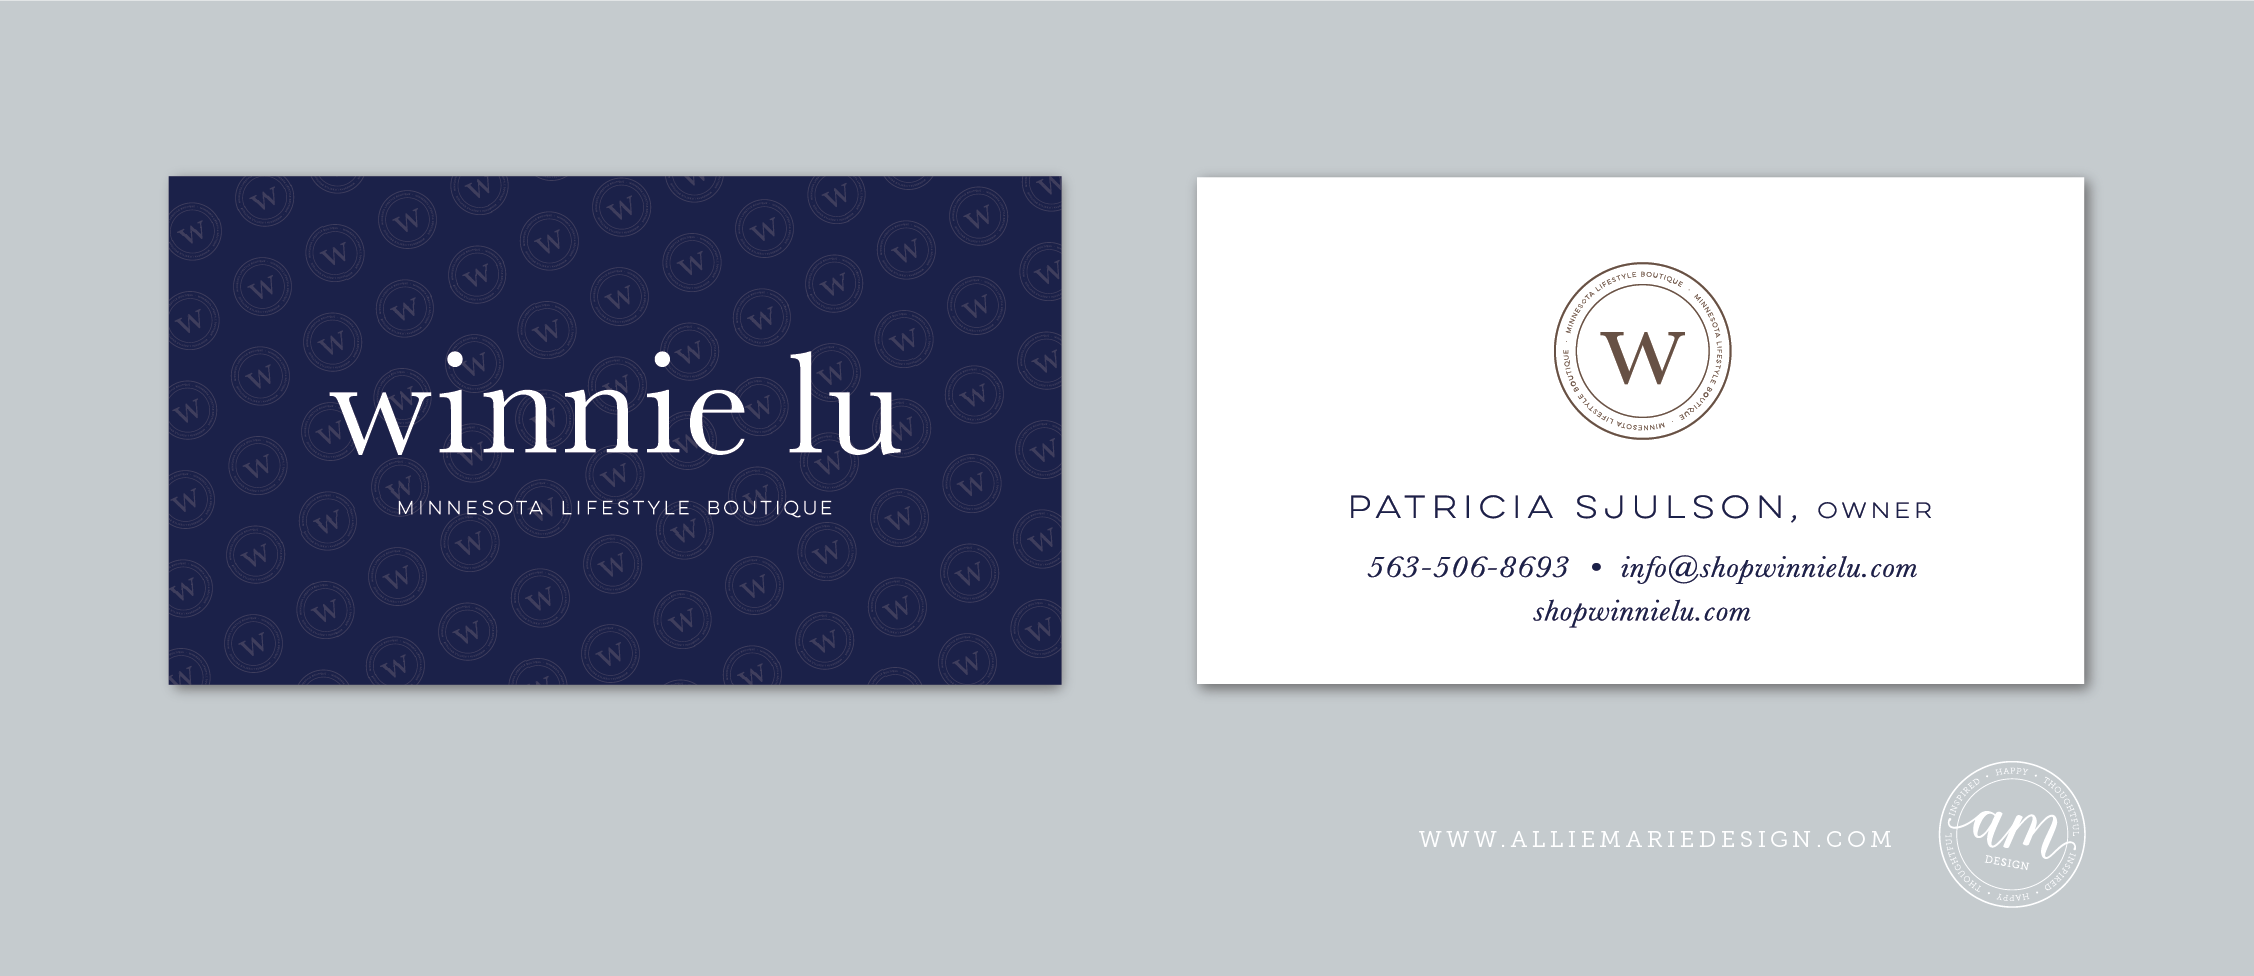 Winnie Lu Minnesota Boutique Business Cards  |  Logo and Visual Branding Design by AllieMarie Design